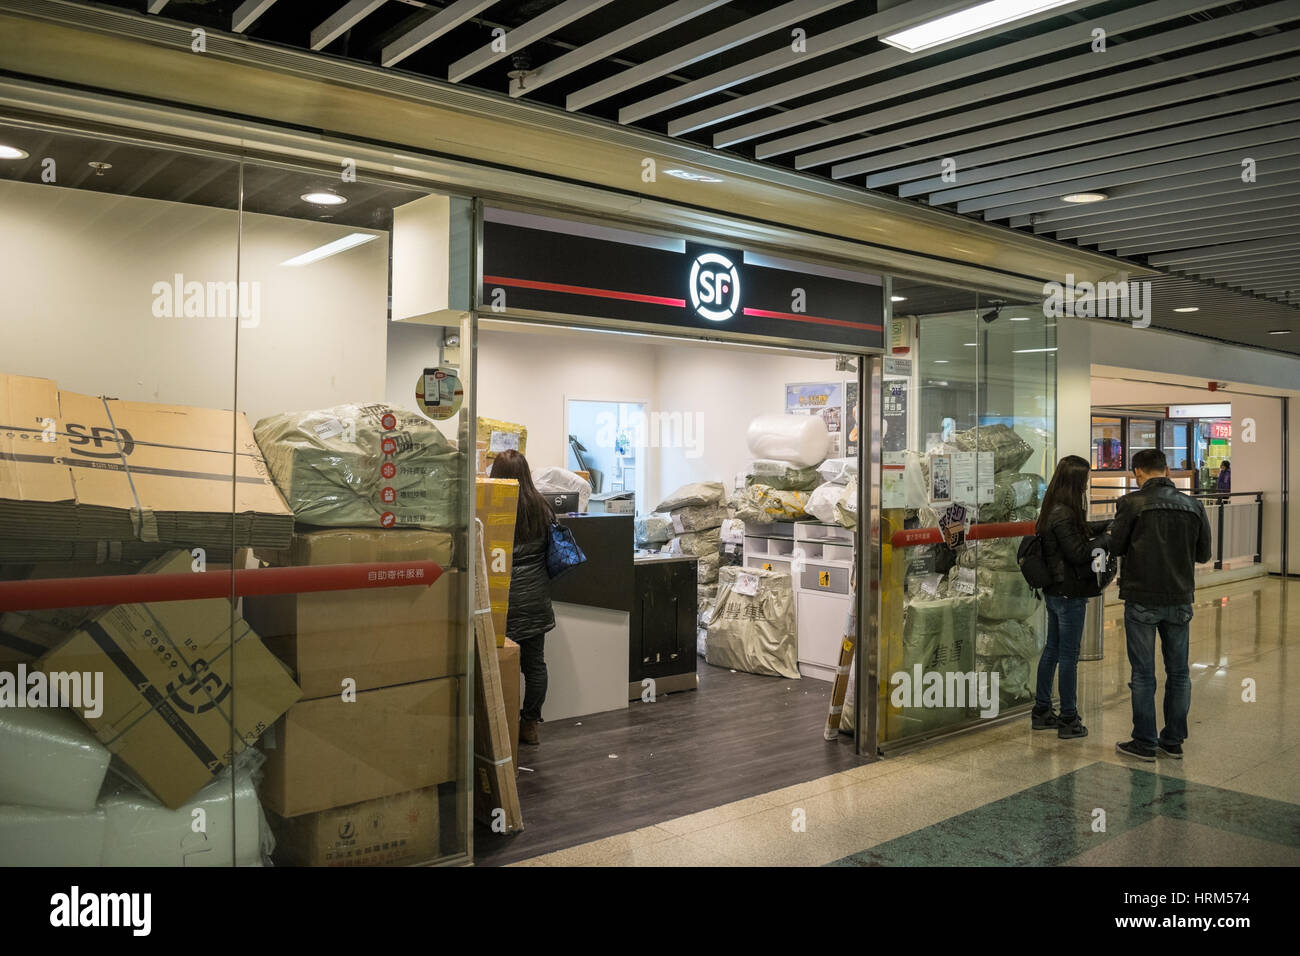 Chinese parcel delivery SF Express branch with parcels stacked in office in Hong Kong - Stock Image